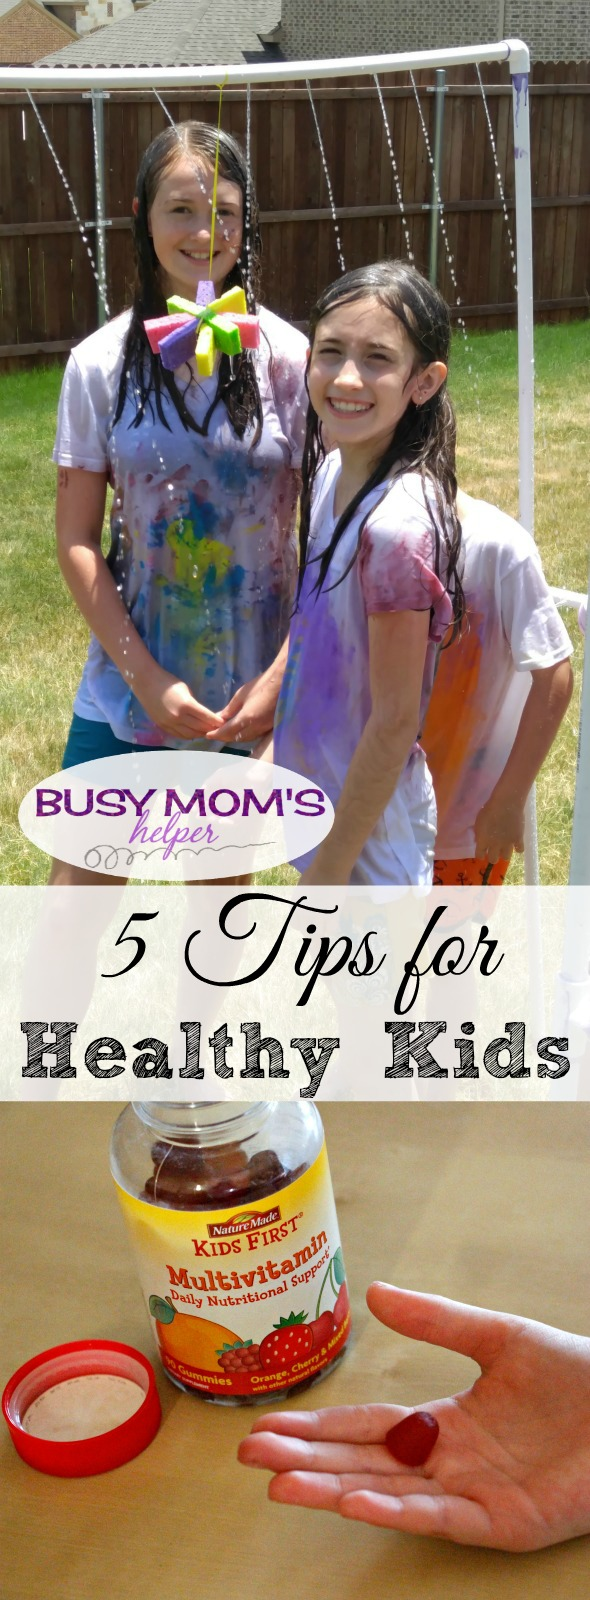 5 Tips for Healthy Kids #NatureMadeAtTarget #IC #ad